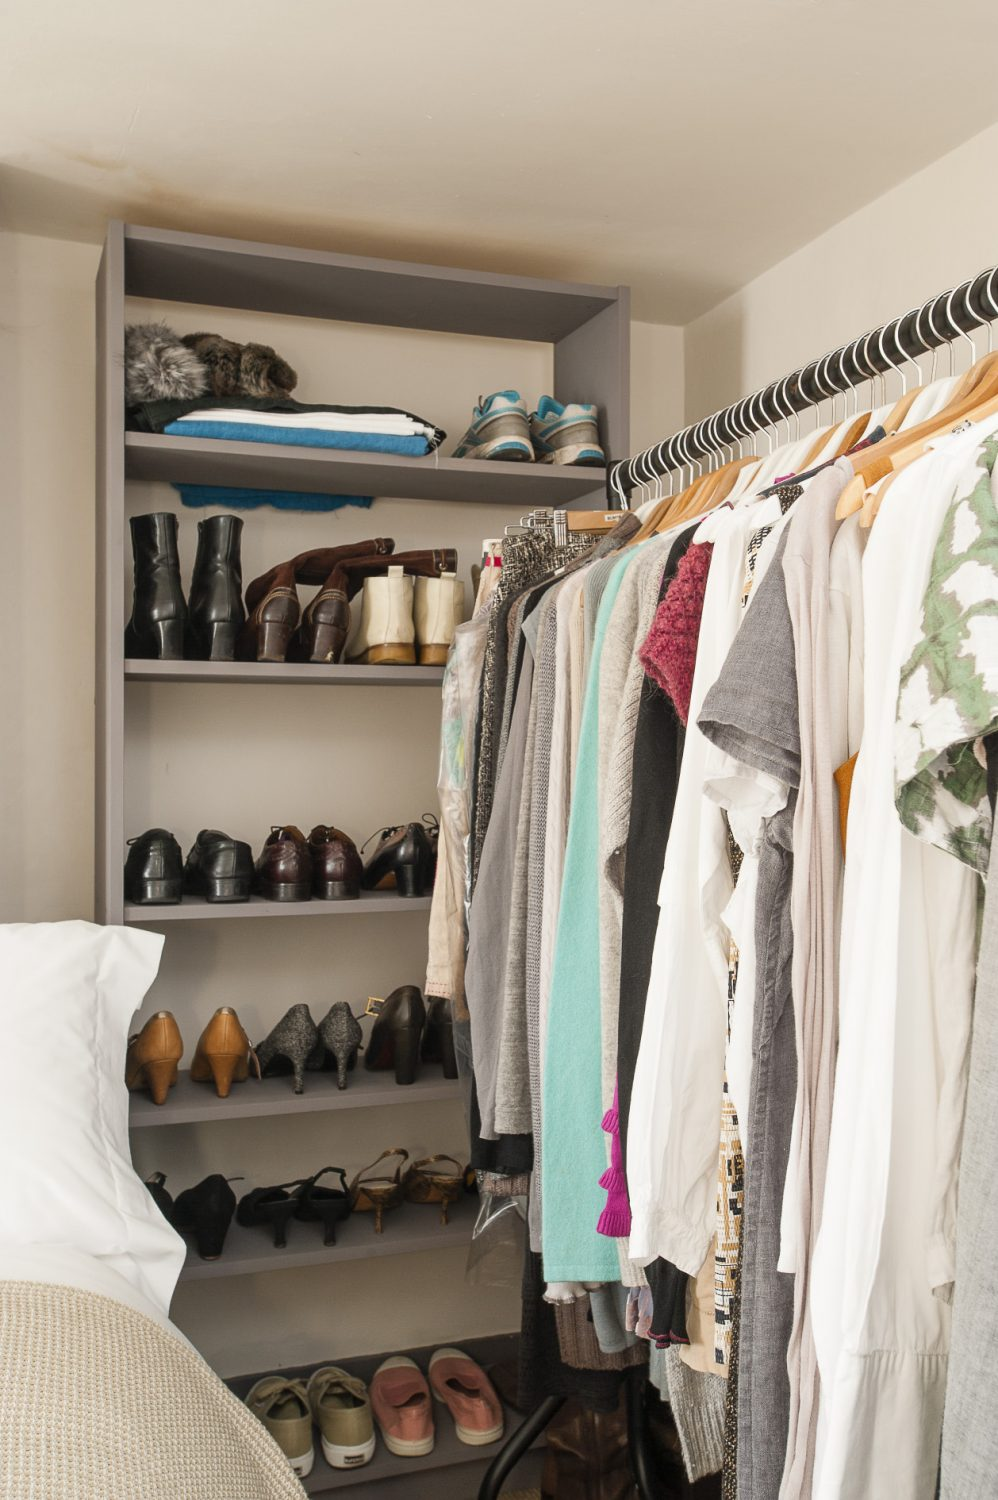 Rather than use up previous space with wardrobes, Christine stores her clothes on rails in the bedroom - and the study - and considers them part of the decor. A bookshelf, painted grey, makes a perfect shoe display